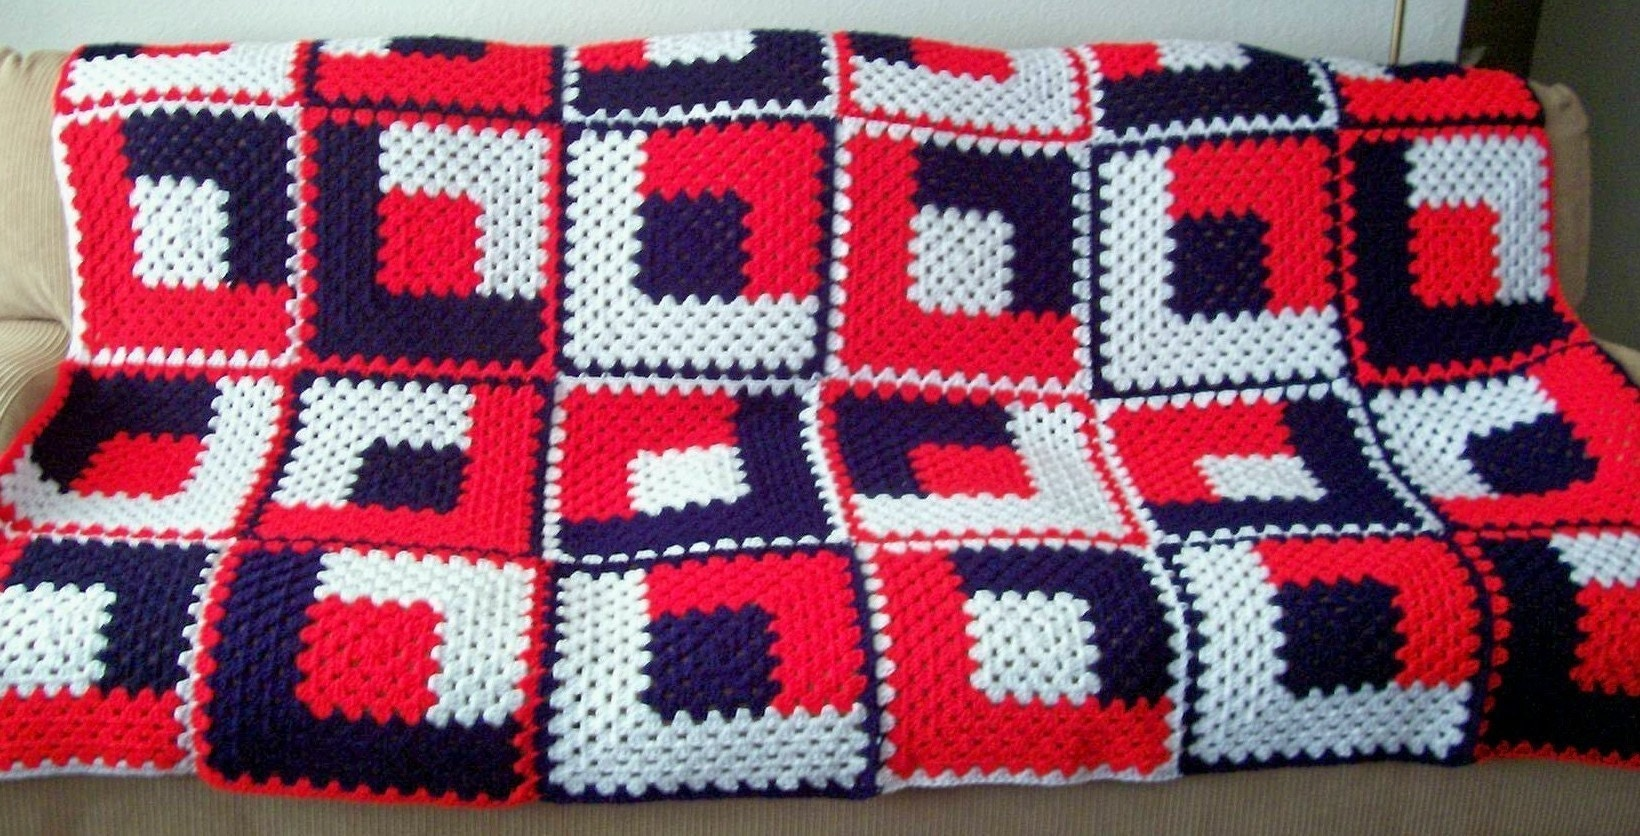 Crocheted Zig Zag Afghan | Free Vintage Crochet Patterns